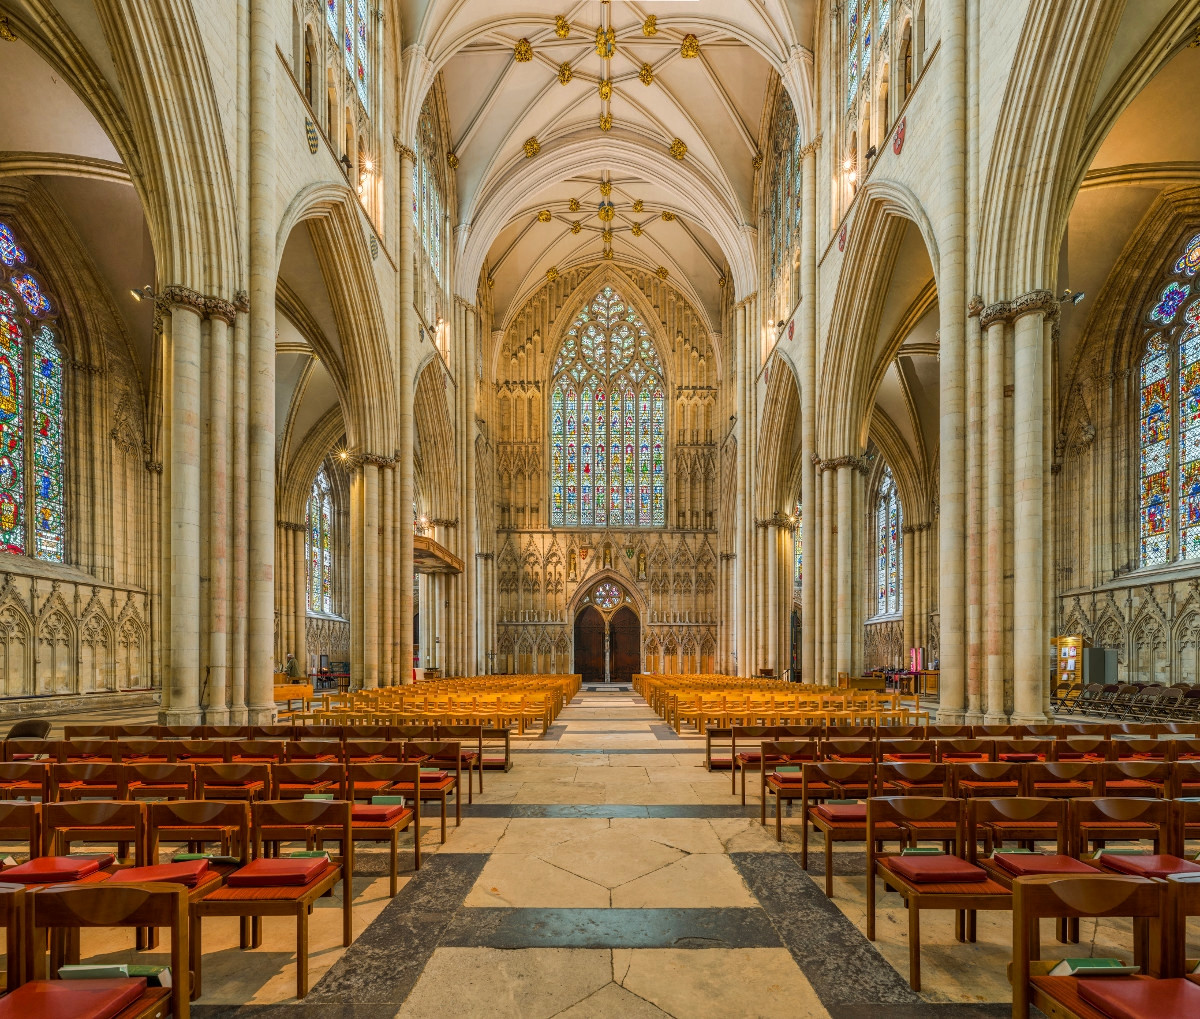 The nave of York Minster looking towards the West Window. Credit David Iliff